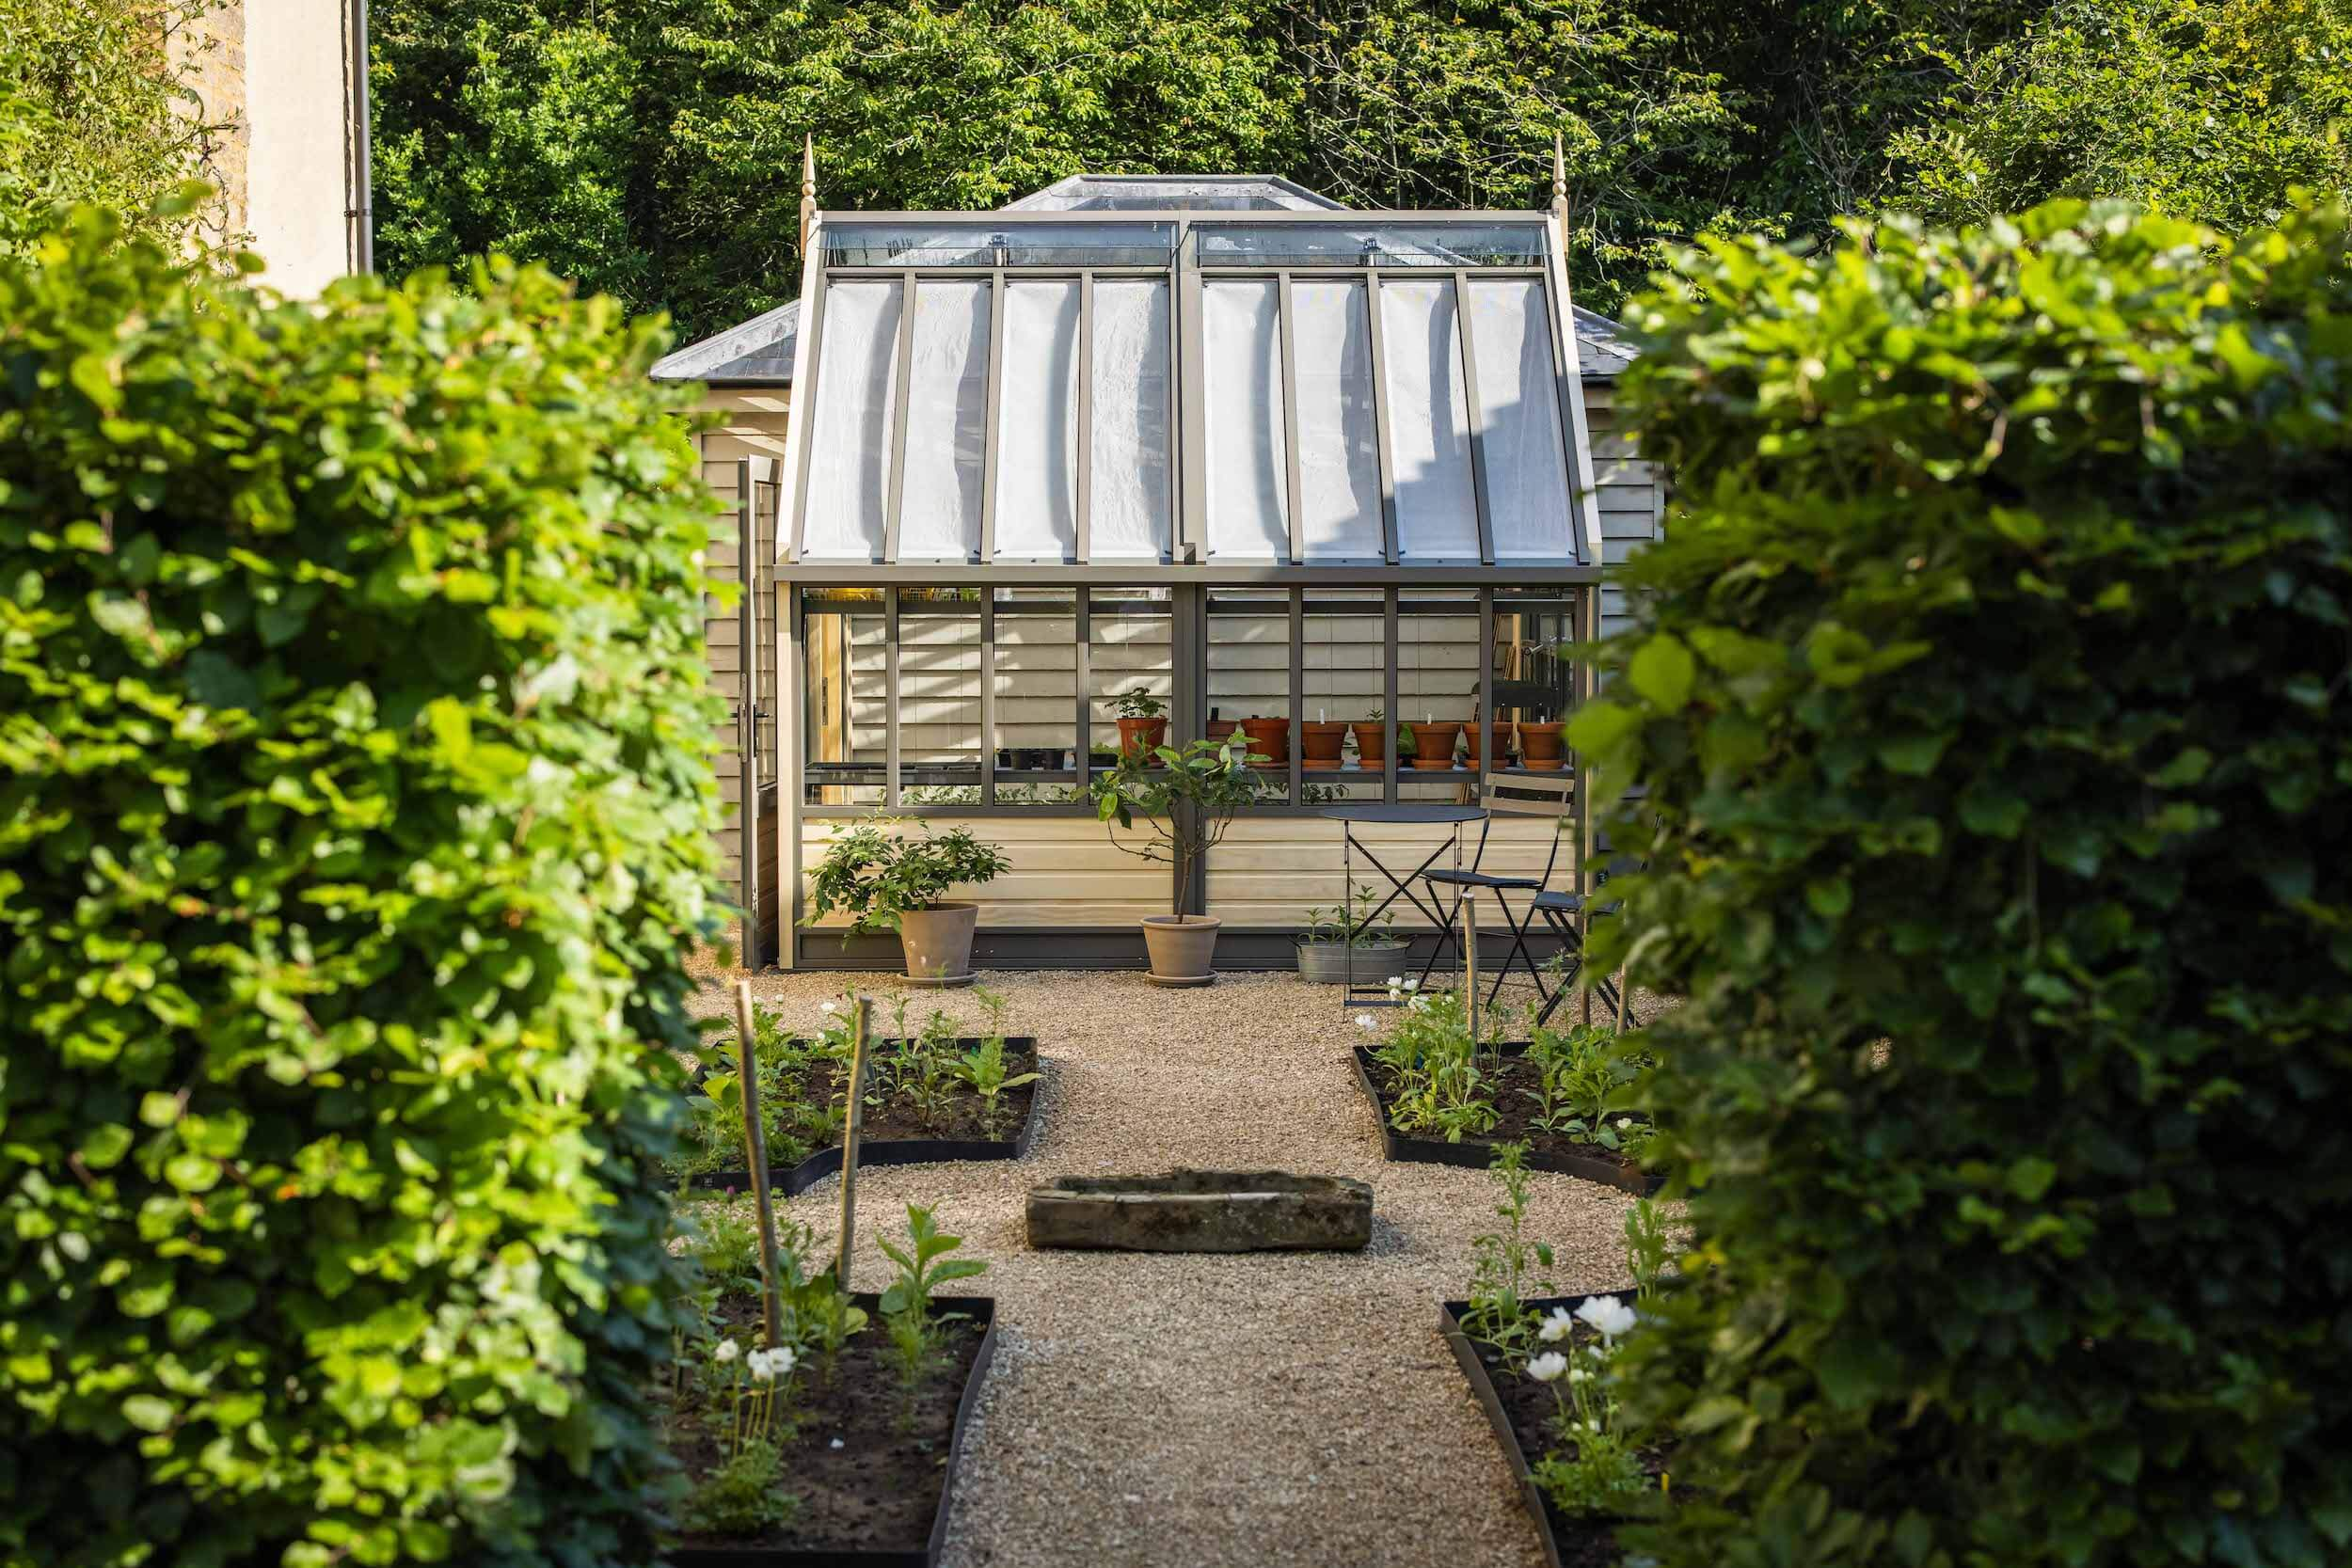 View of greenhouse through hedge